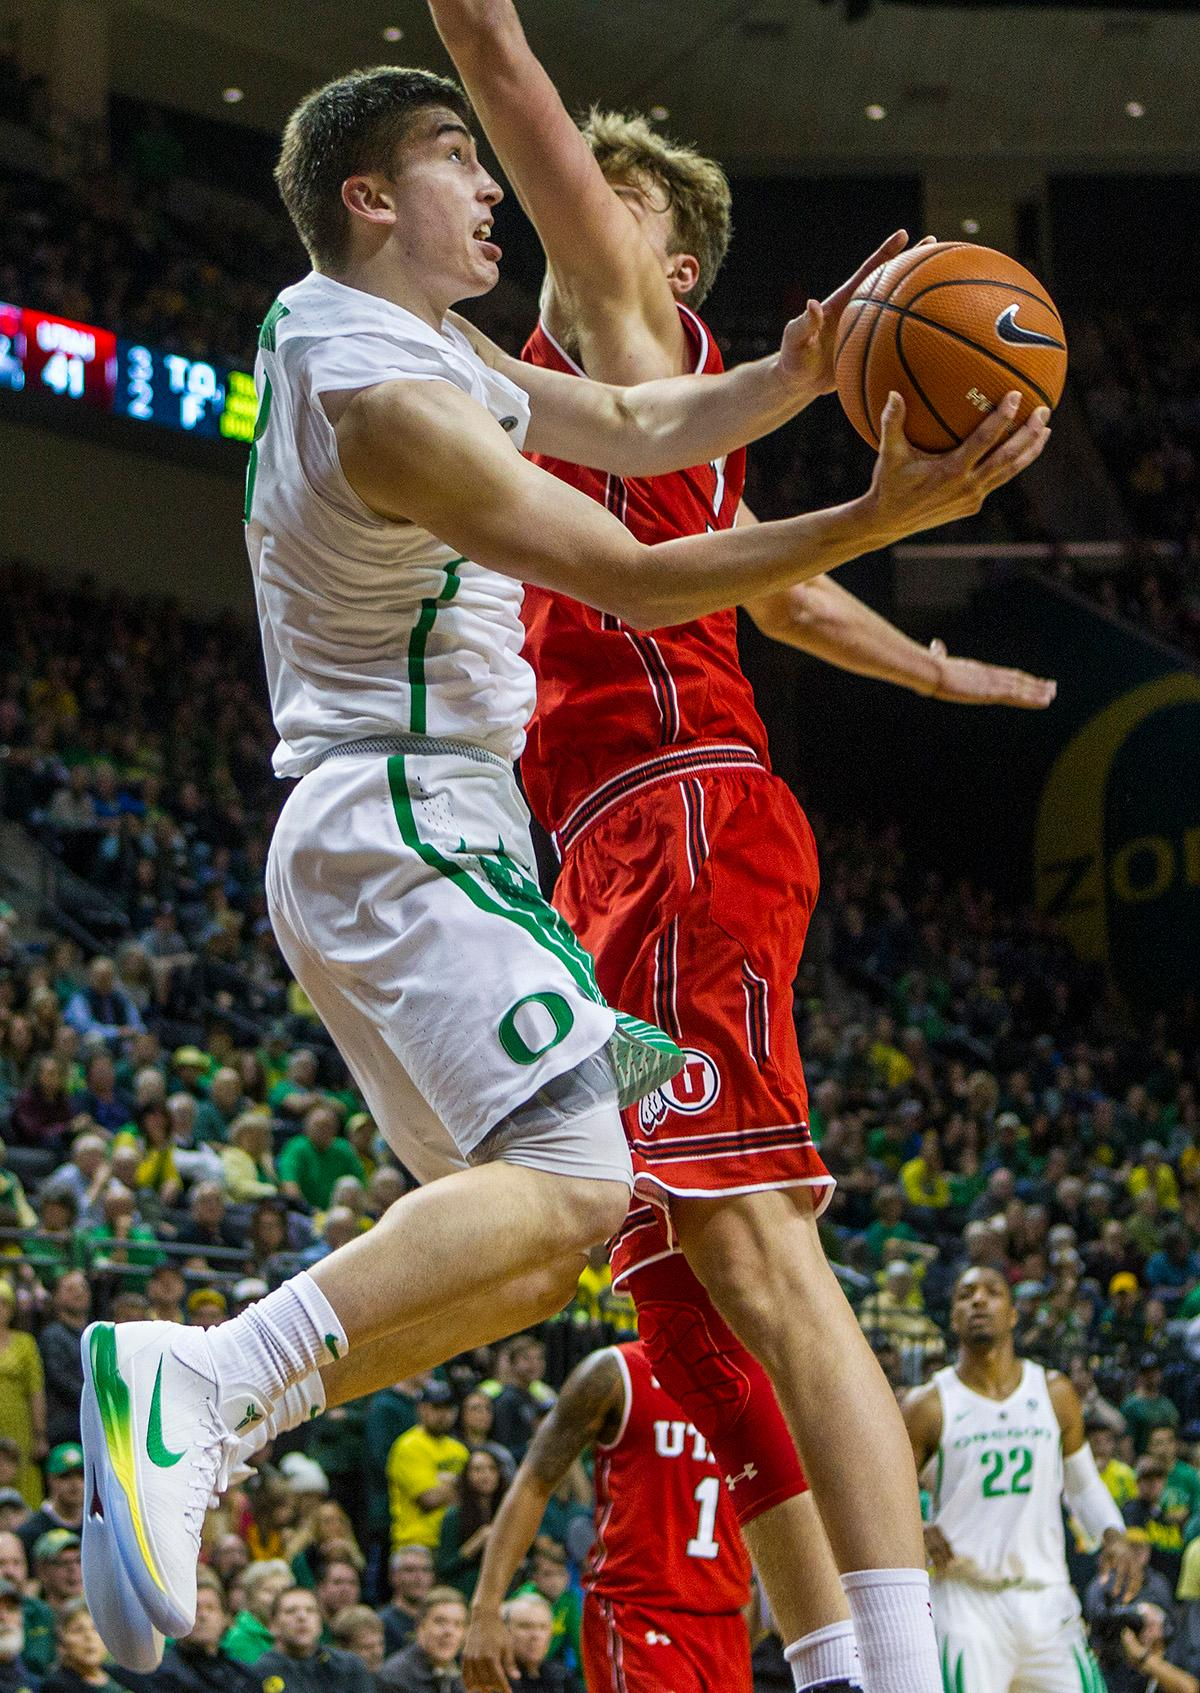 Oregon Ducks Payton Pritchard (#3) looks for the basket as he is pressured by Utah's defense. The Utah Utes defeated the Oregon Ducks 66-56 on Friday night at Matthew Knight Arena. This is the first Pac-12 conference game loss at home for the Ducks since January of 2015. This also ended the five home game winning streak for the Ducks against the Utah Utes. Photo by Rhianna Gelhart, Oregon News Lab